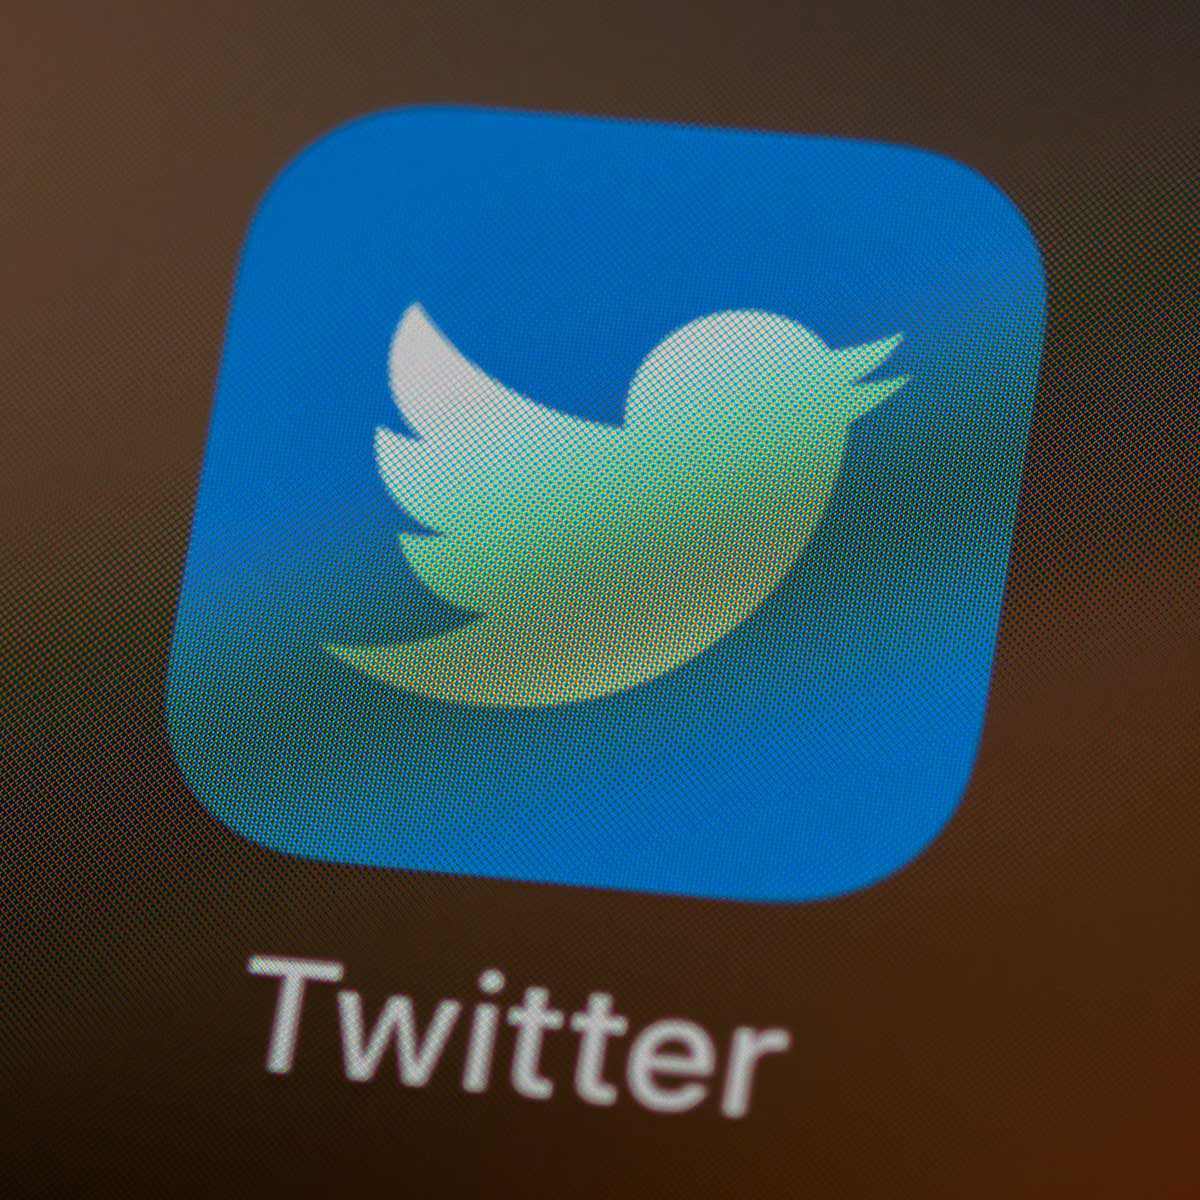 Twitter icon on screen